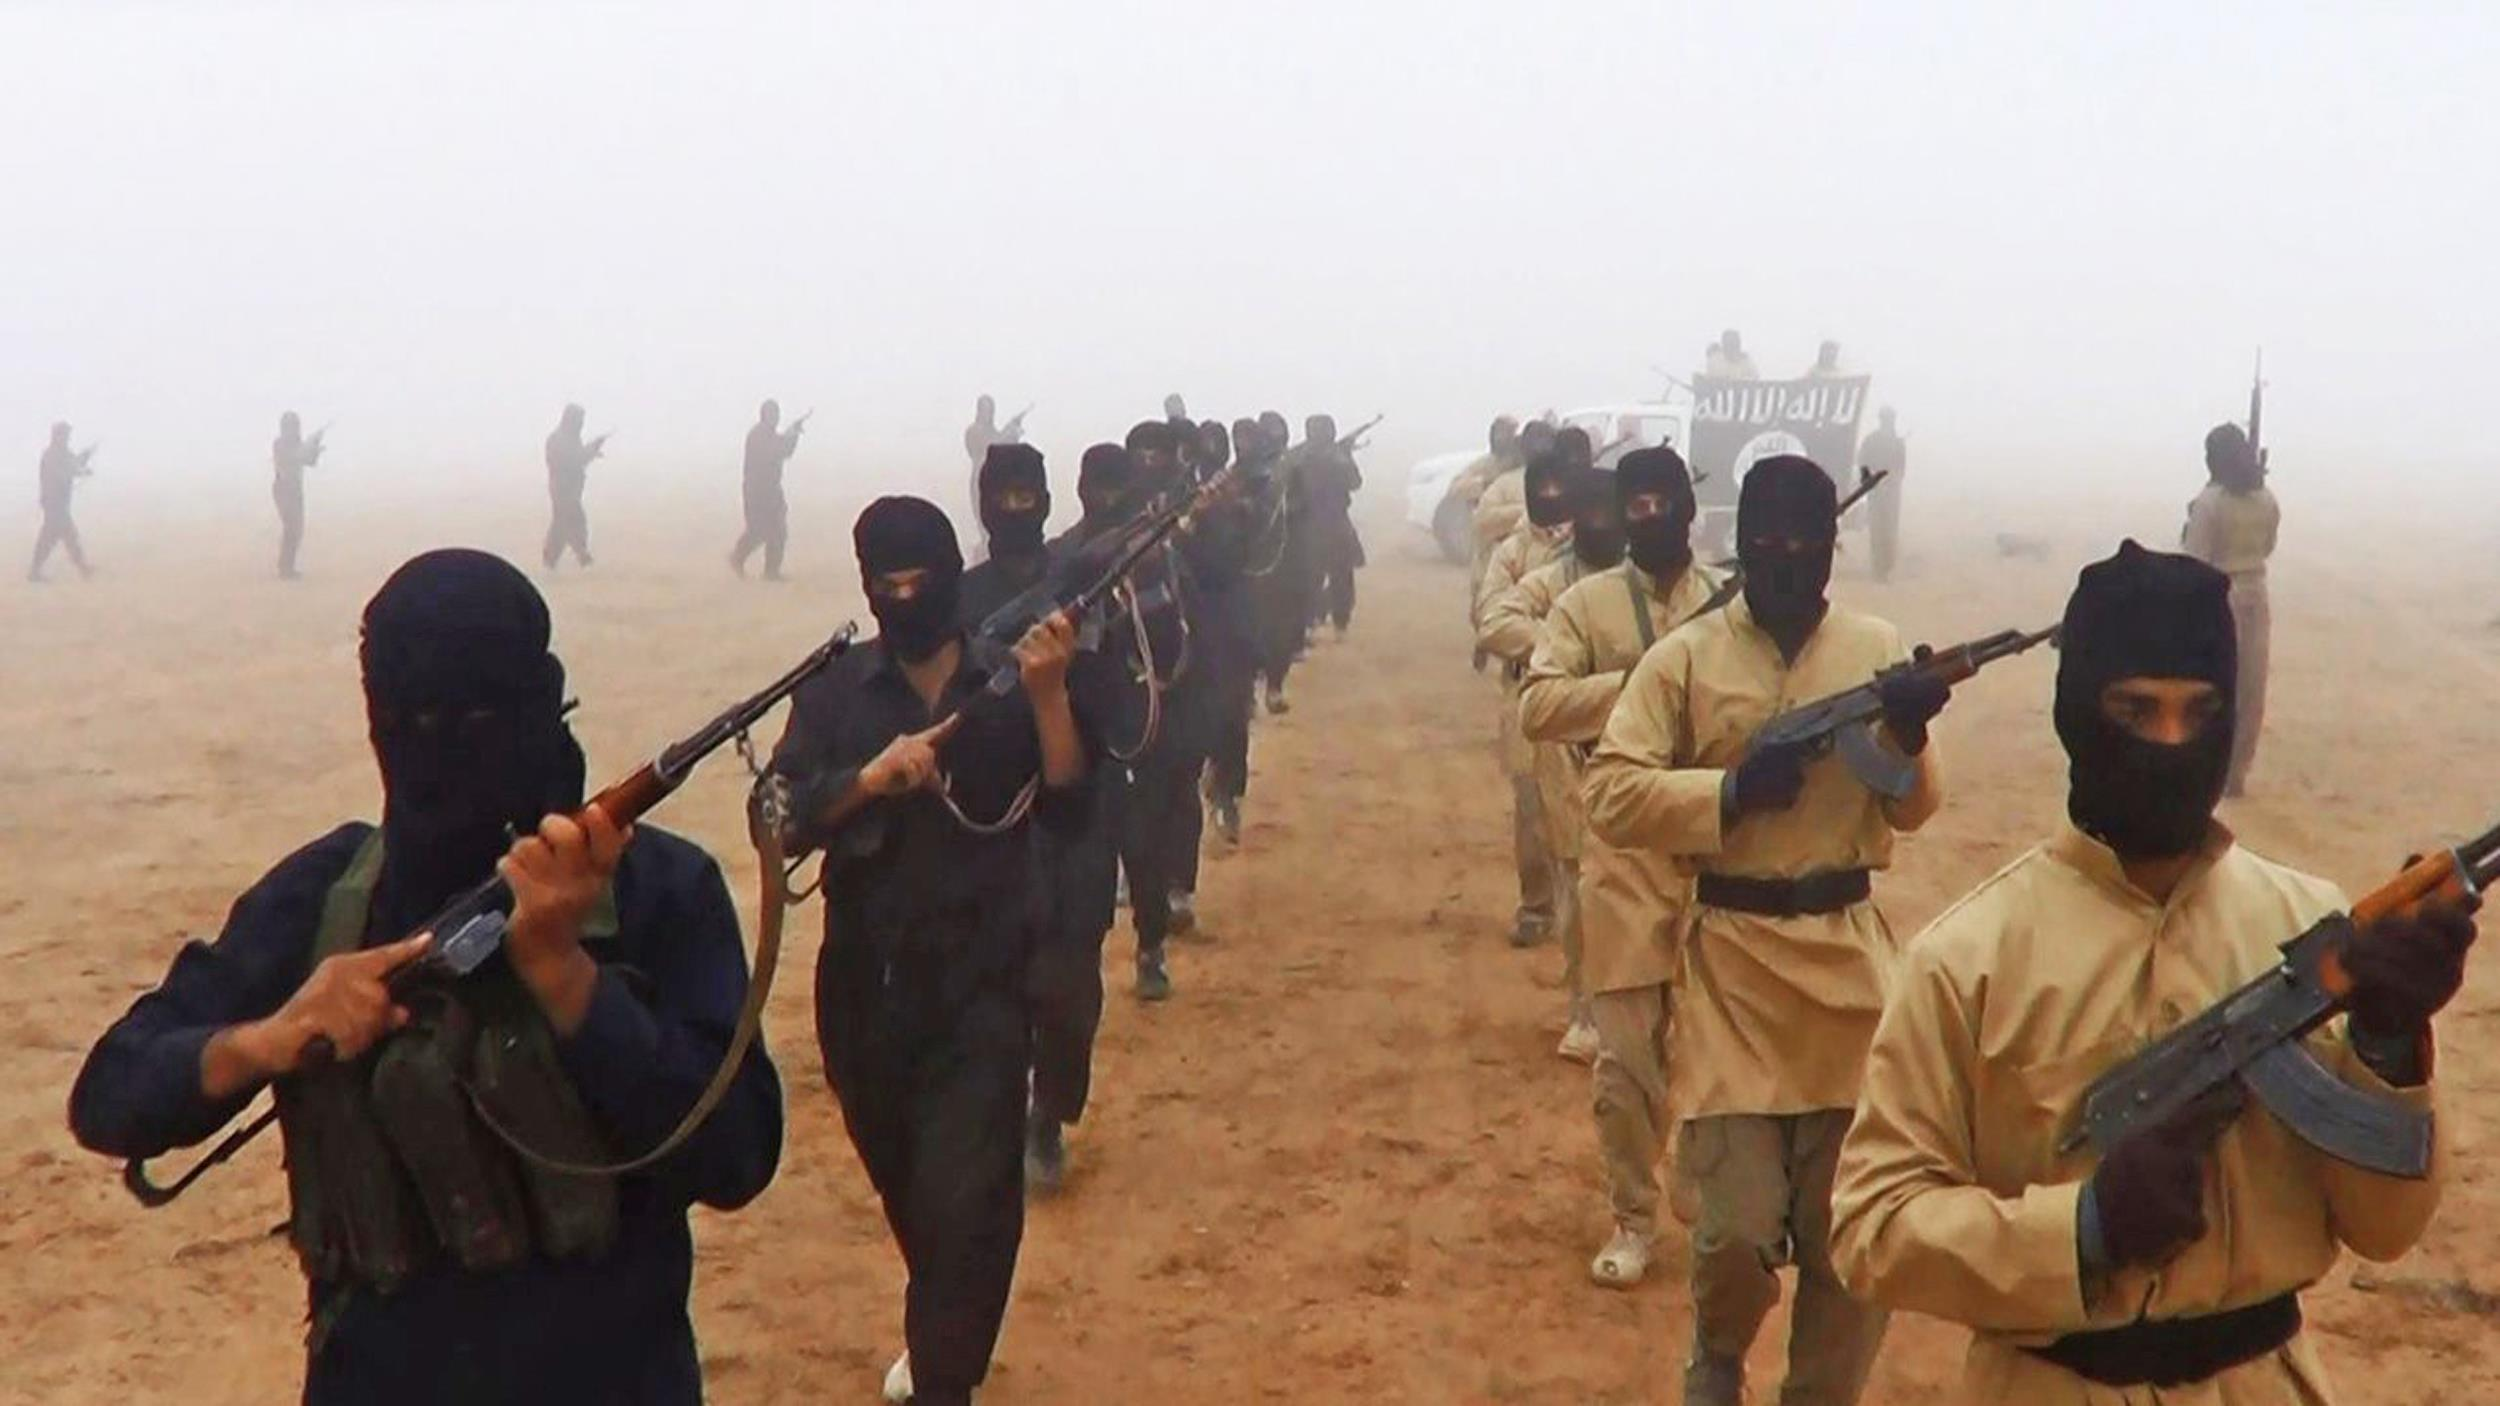 islam has been hijacked by terrorism Read this full essay on islam has been hijacked by terrorism in the wake of september 11, leading muslims in america and other western countries a terrorist, writes syed soharwardy in an article published online, apparently before september 11, by an outfit called muslims against terrorism.